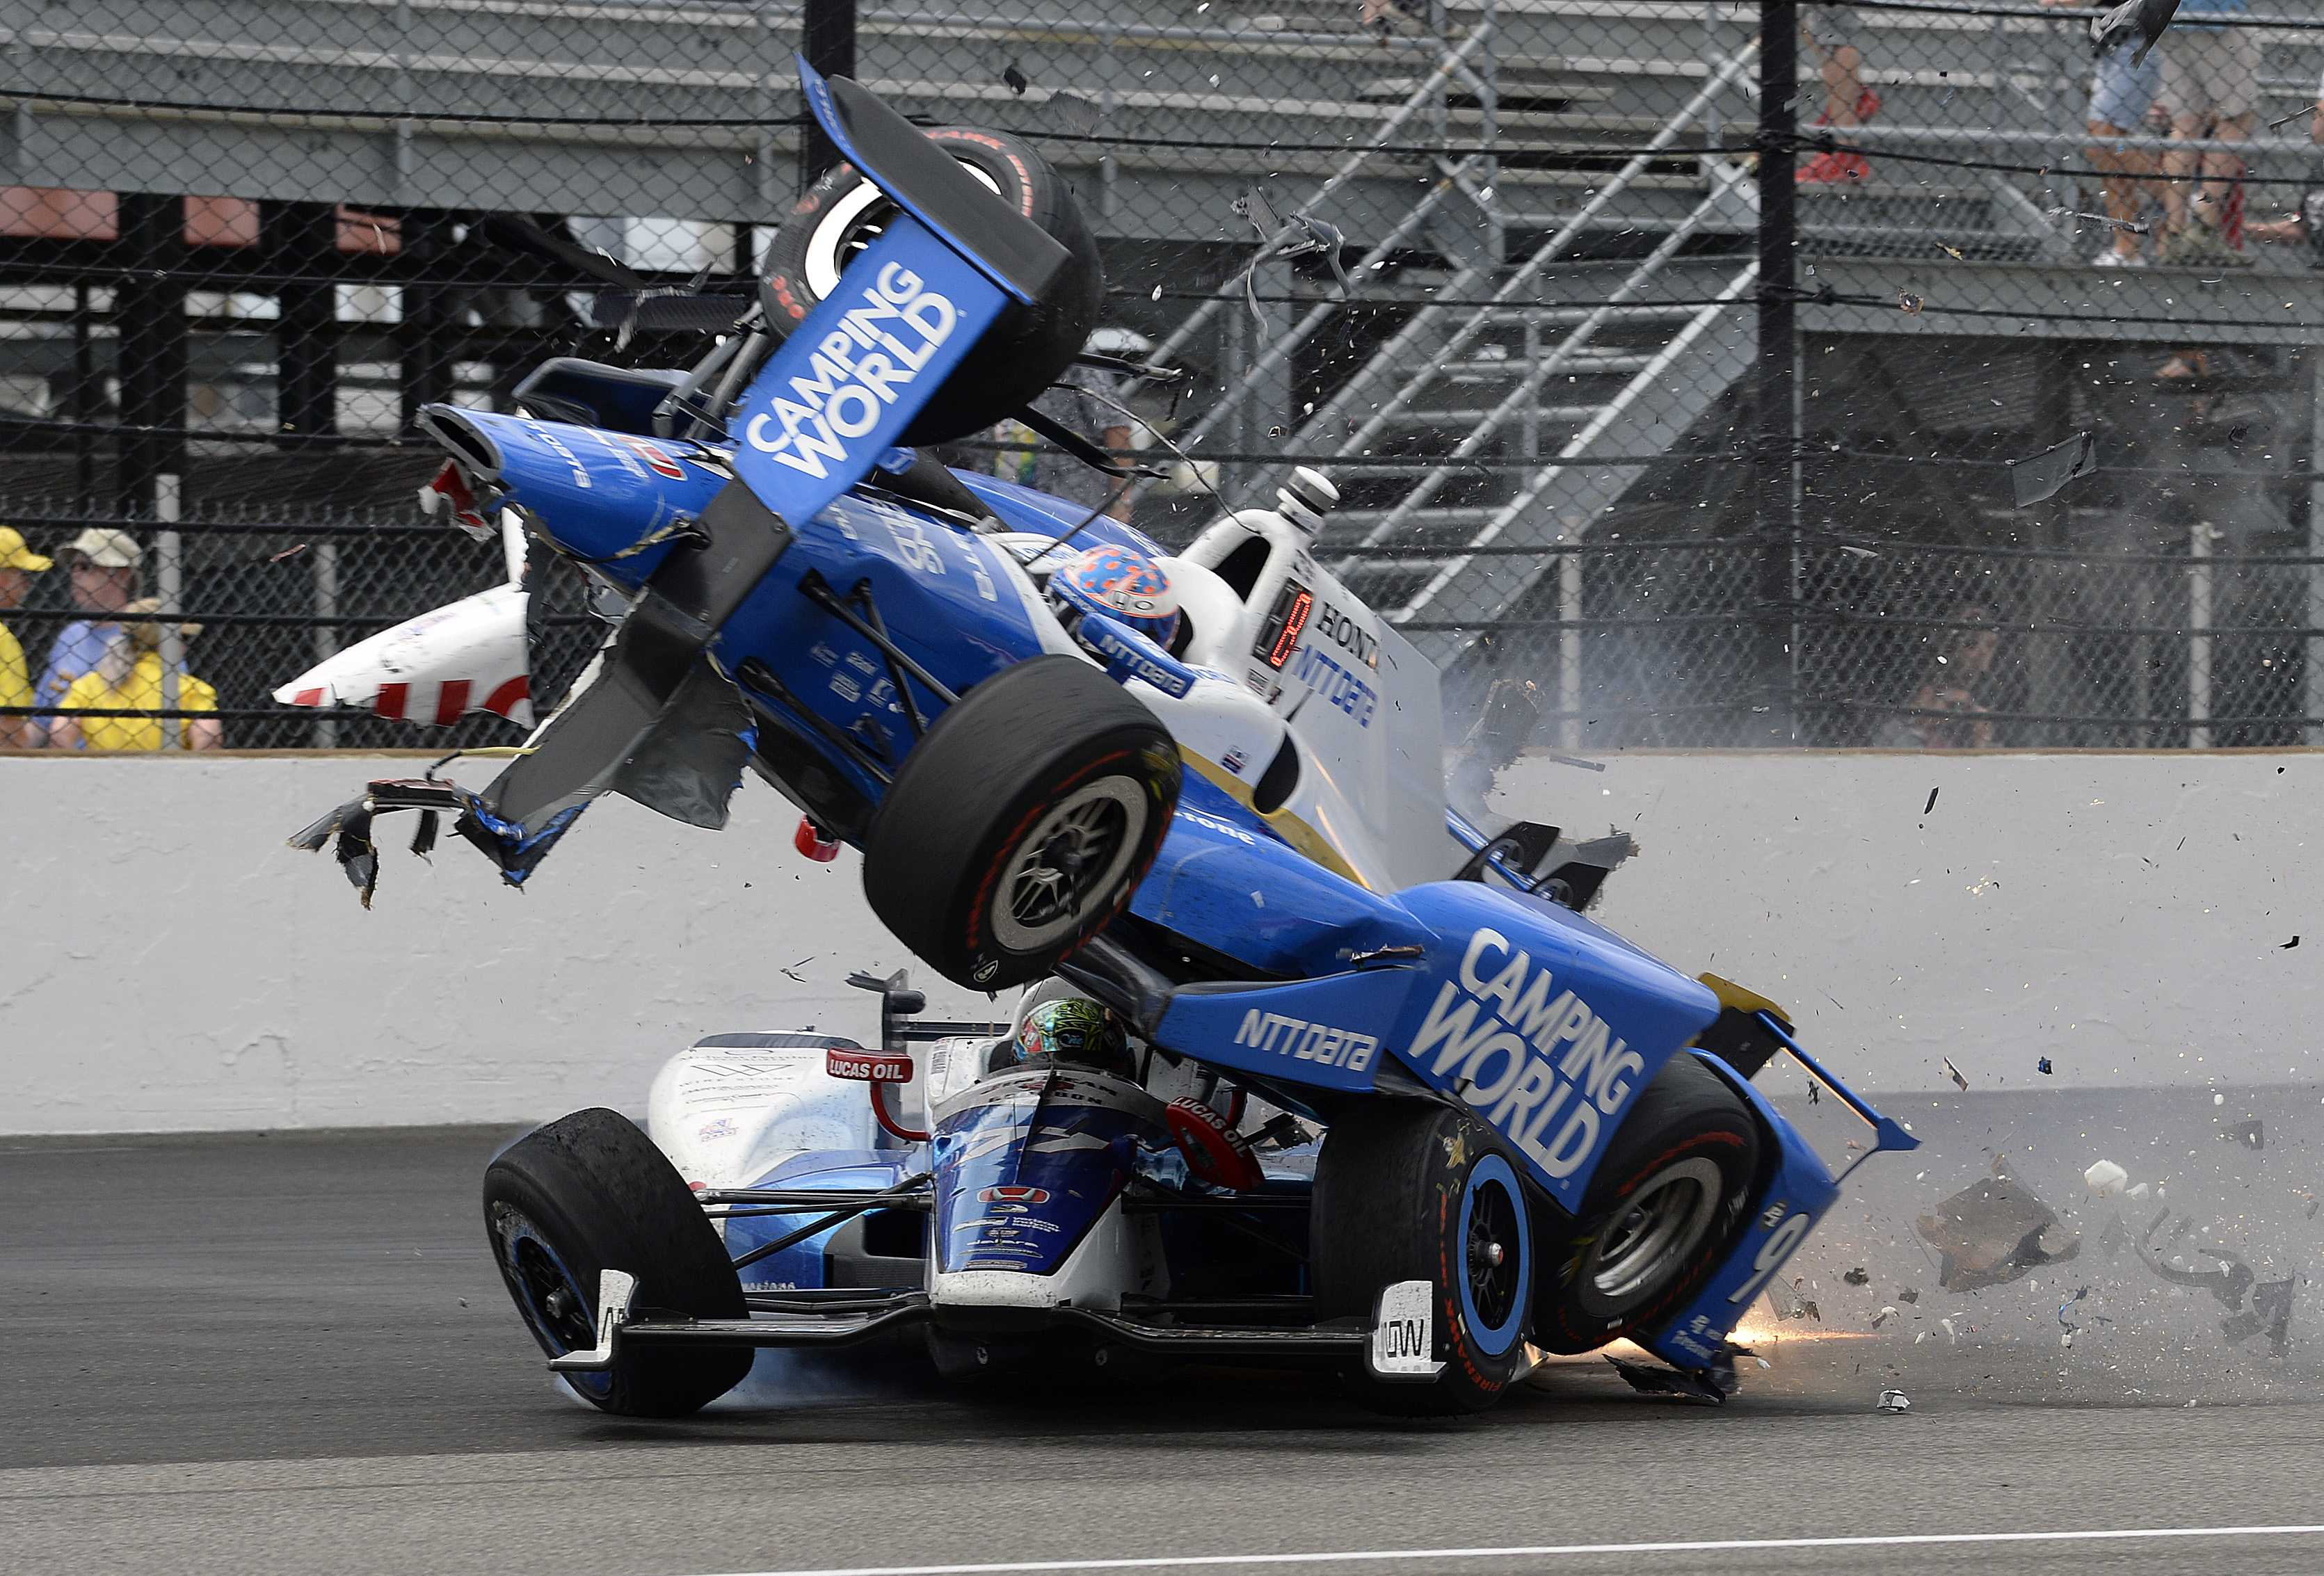 Scott Dixon Walked Away From A Horrifying Crash At The Indy 500